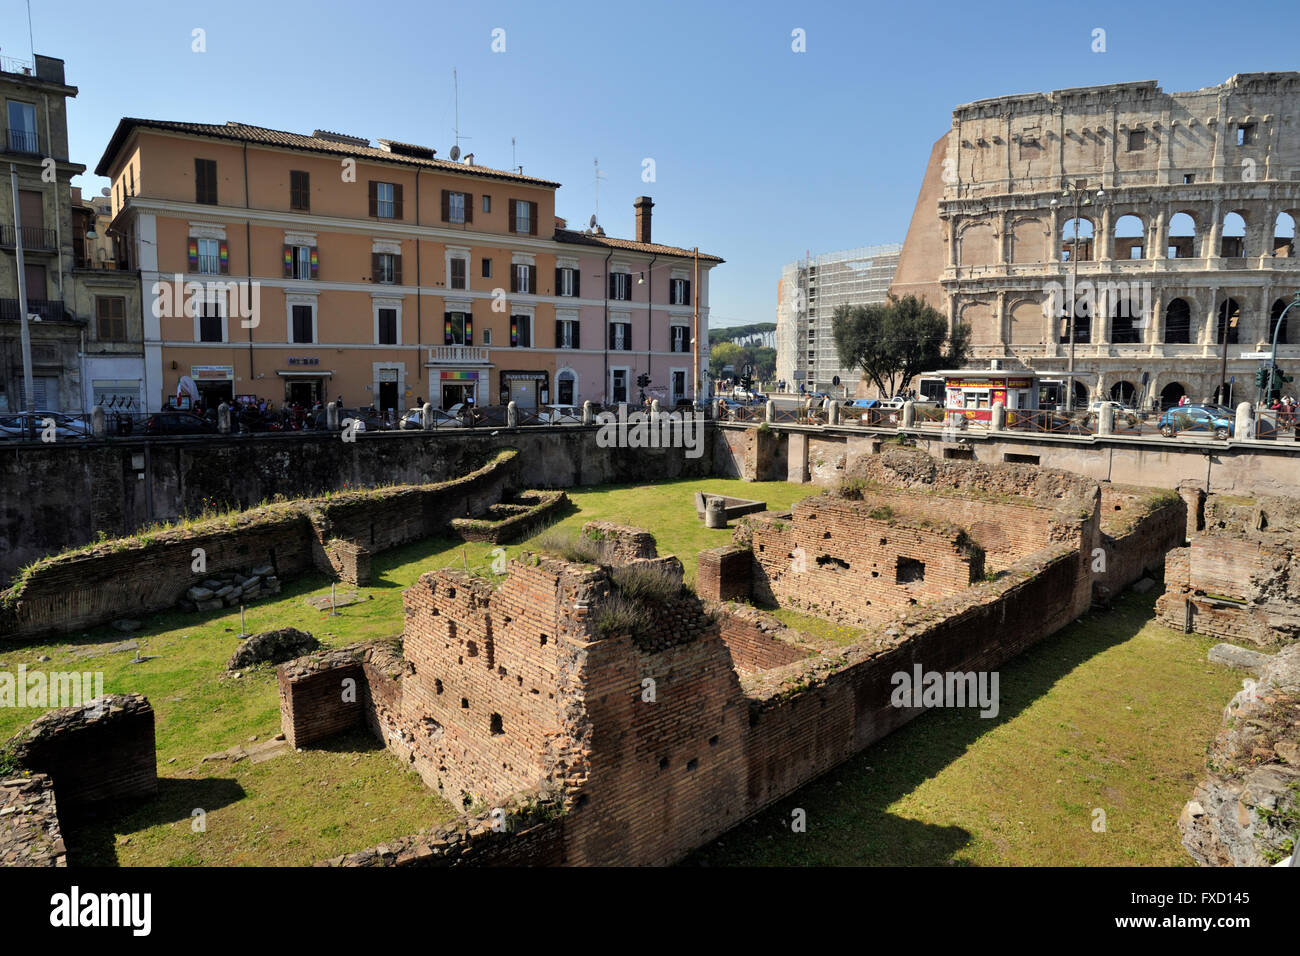 italy, rome, Ludus Magnus and colosseum - Stock Image